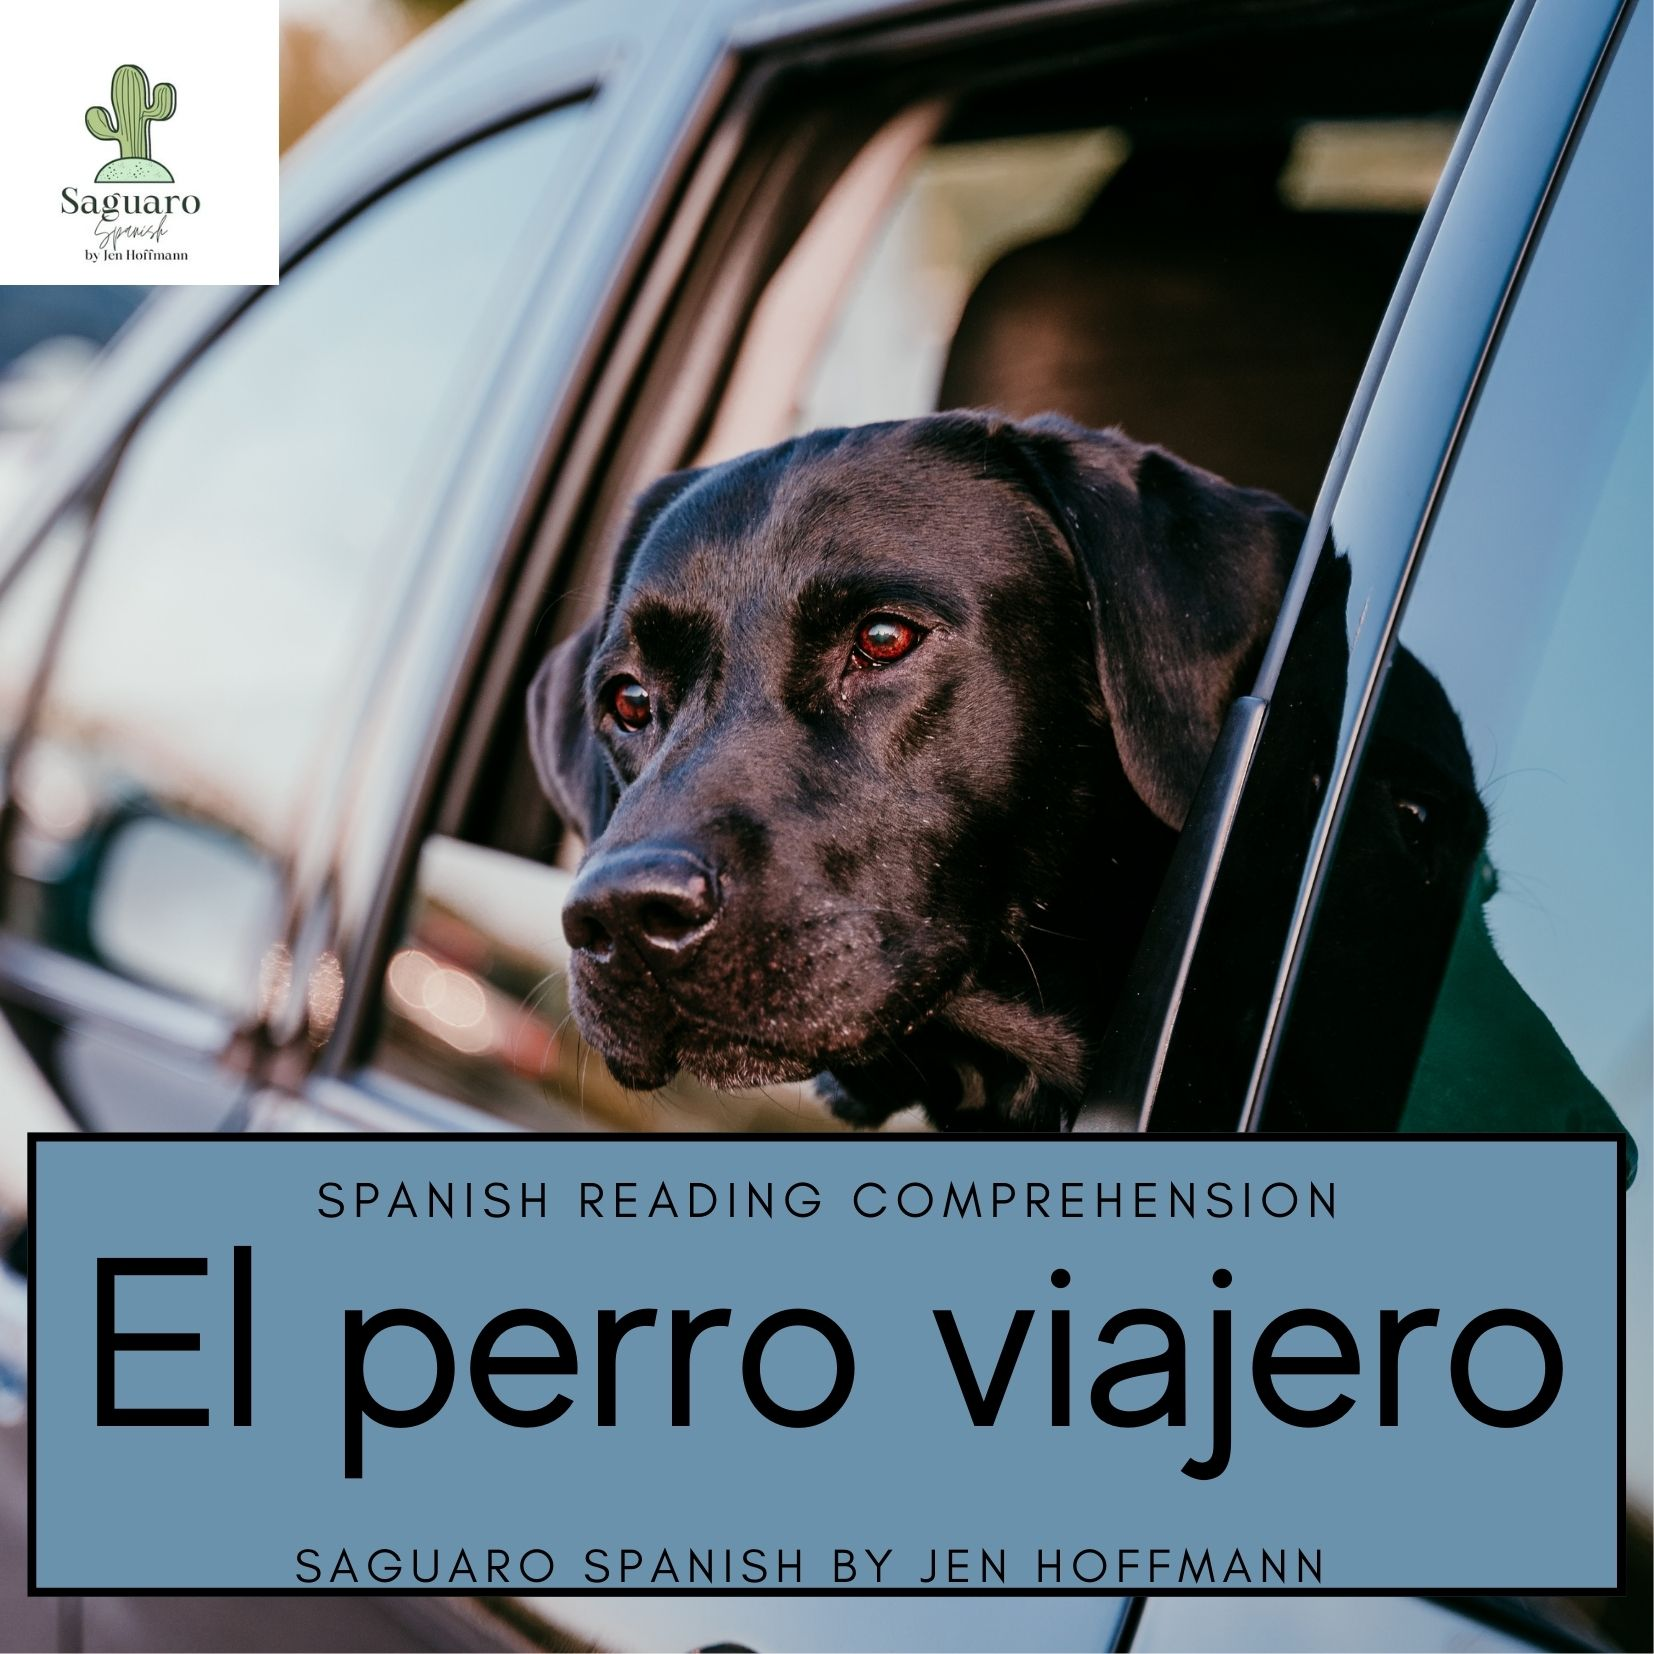 Spanish (CI) Reading Comprehension Story and Worksheet : El perro viajero's featured image